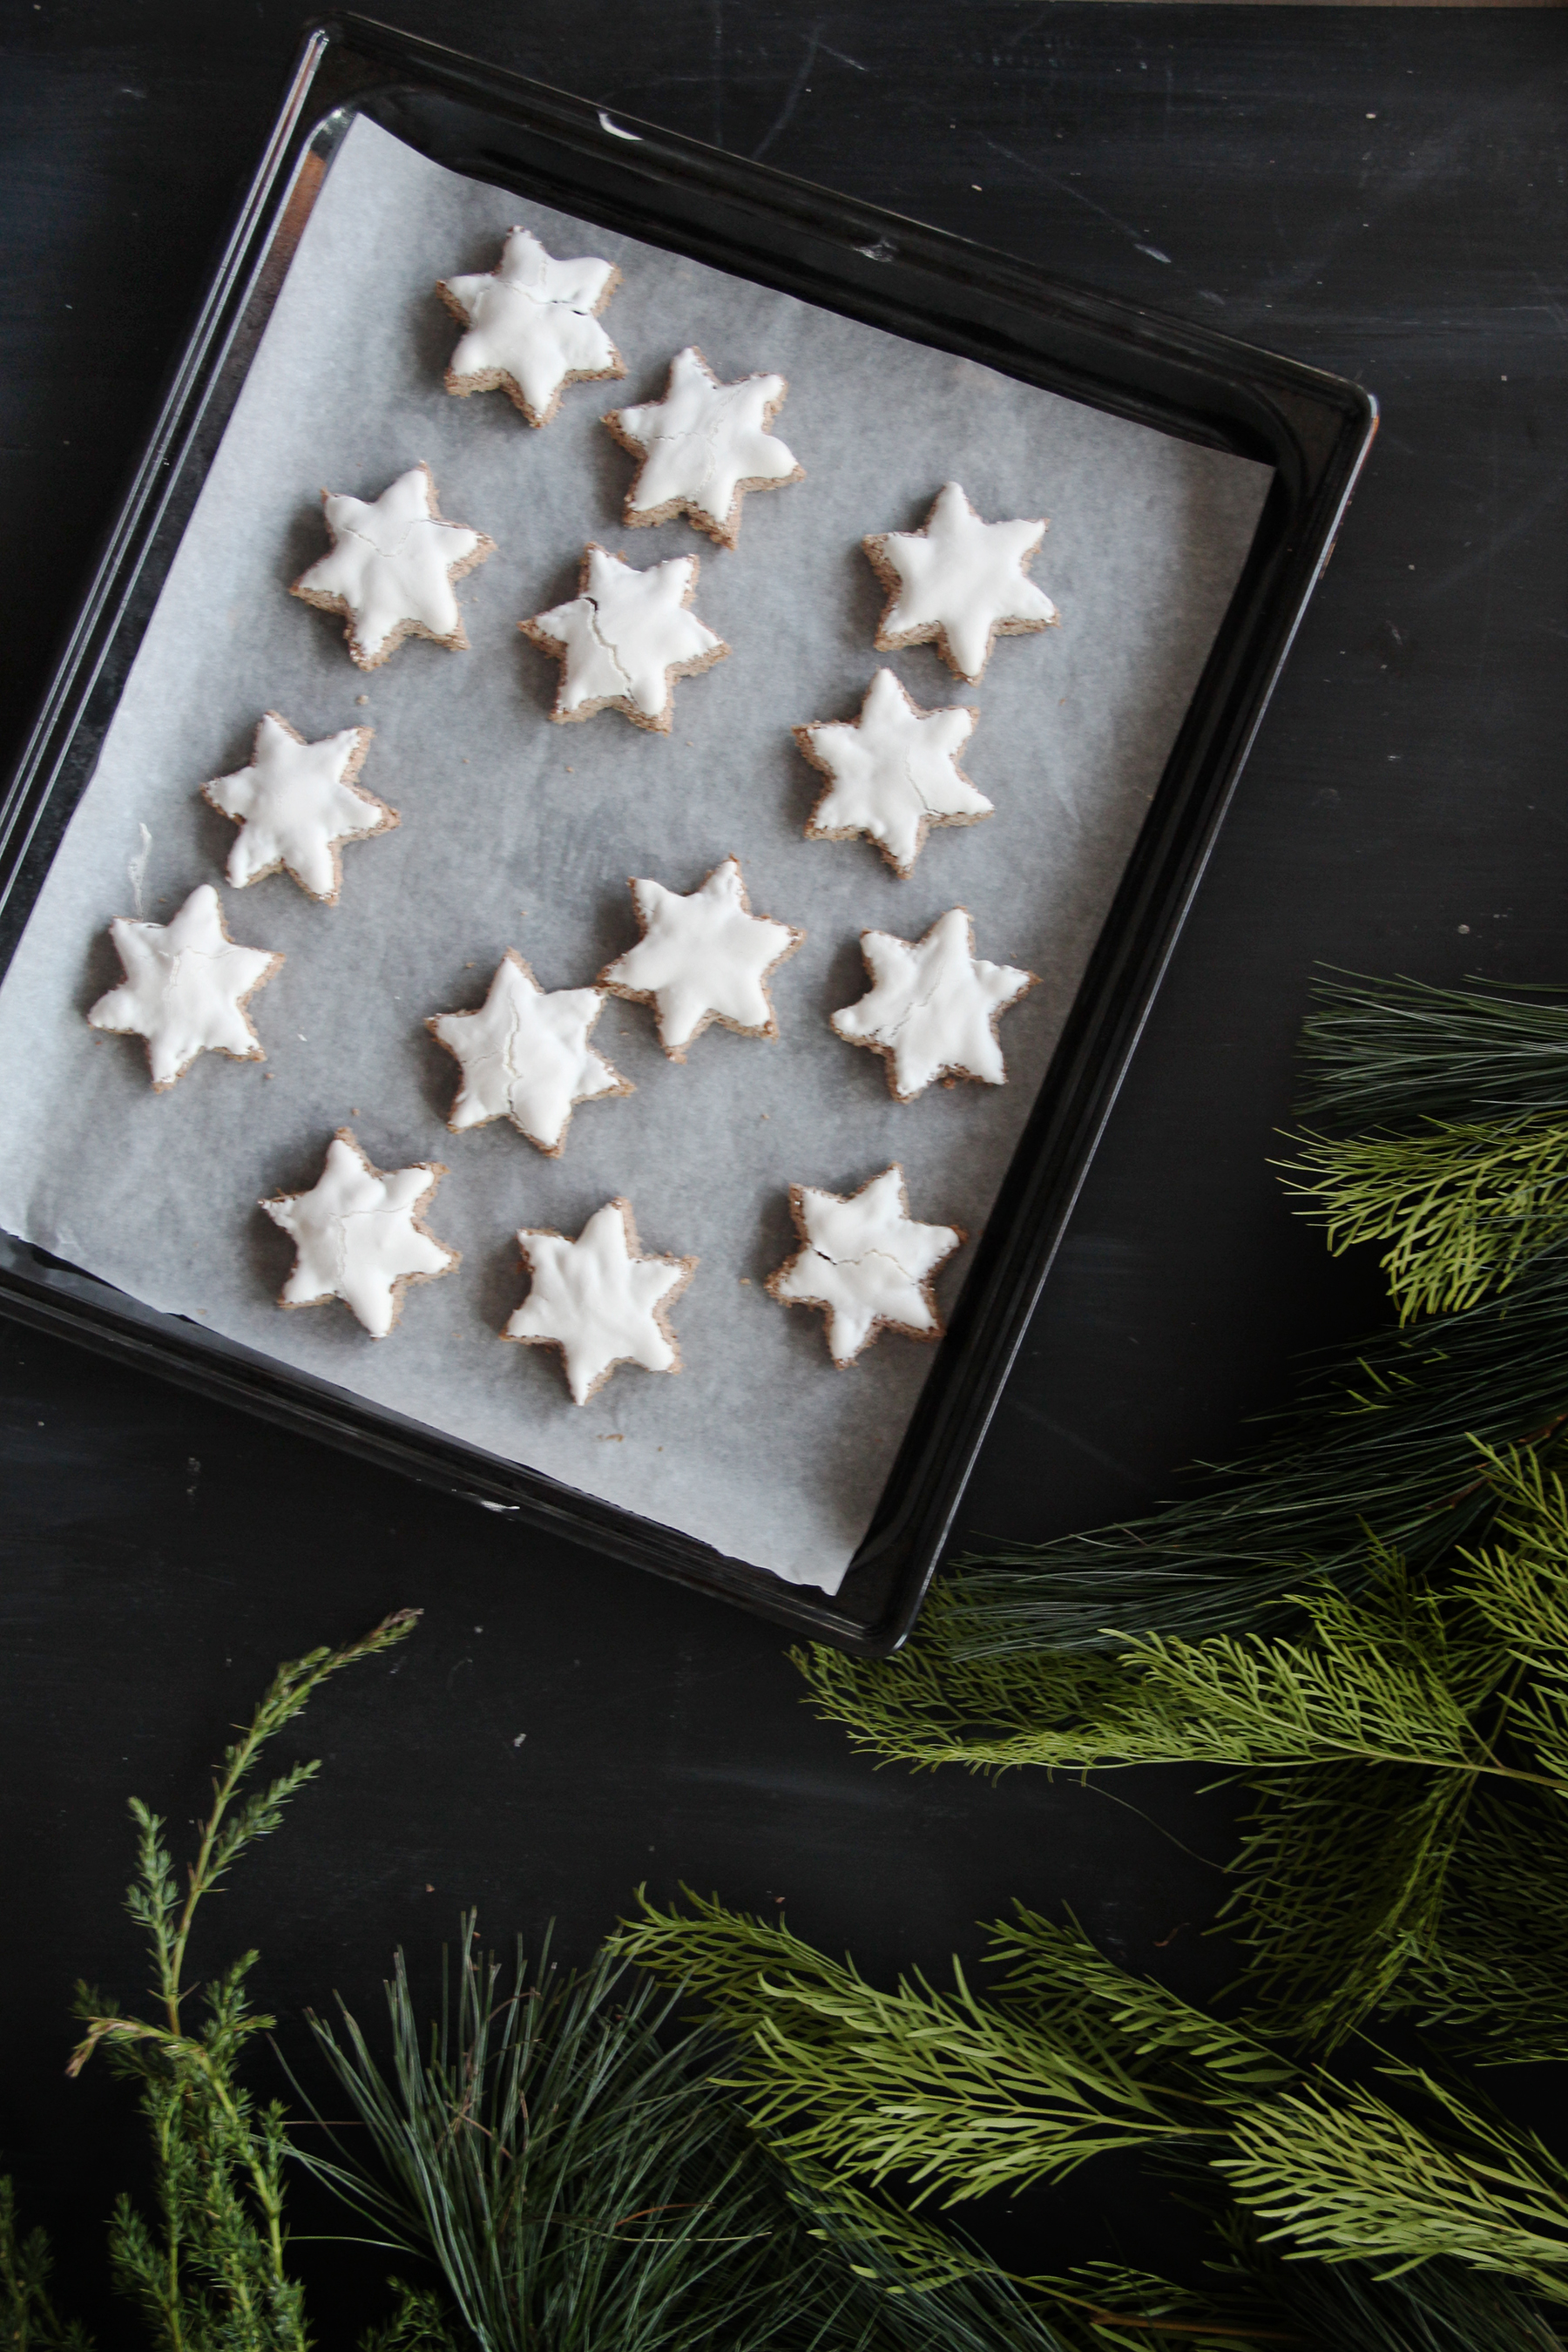 cinnamon stars with chocolate